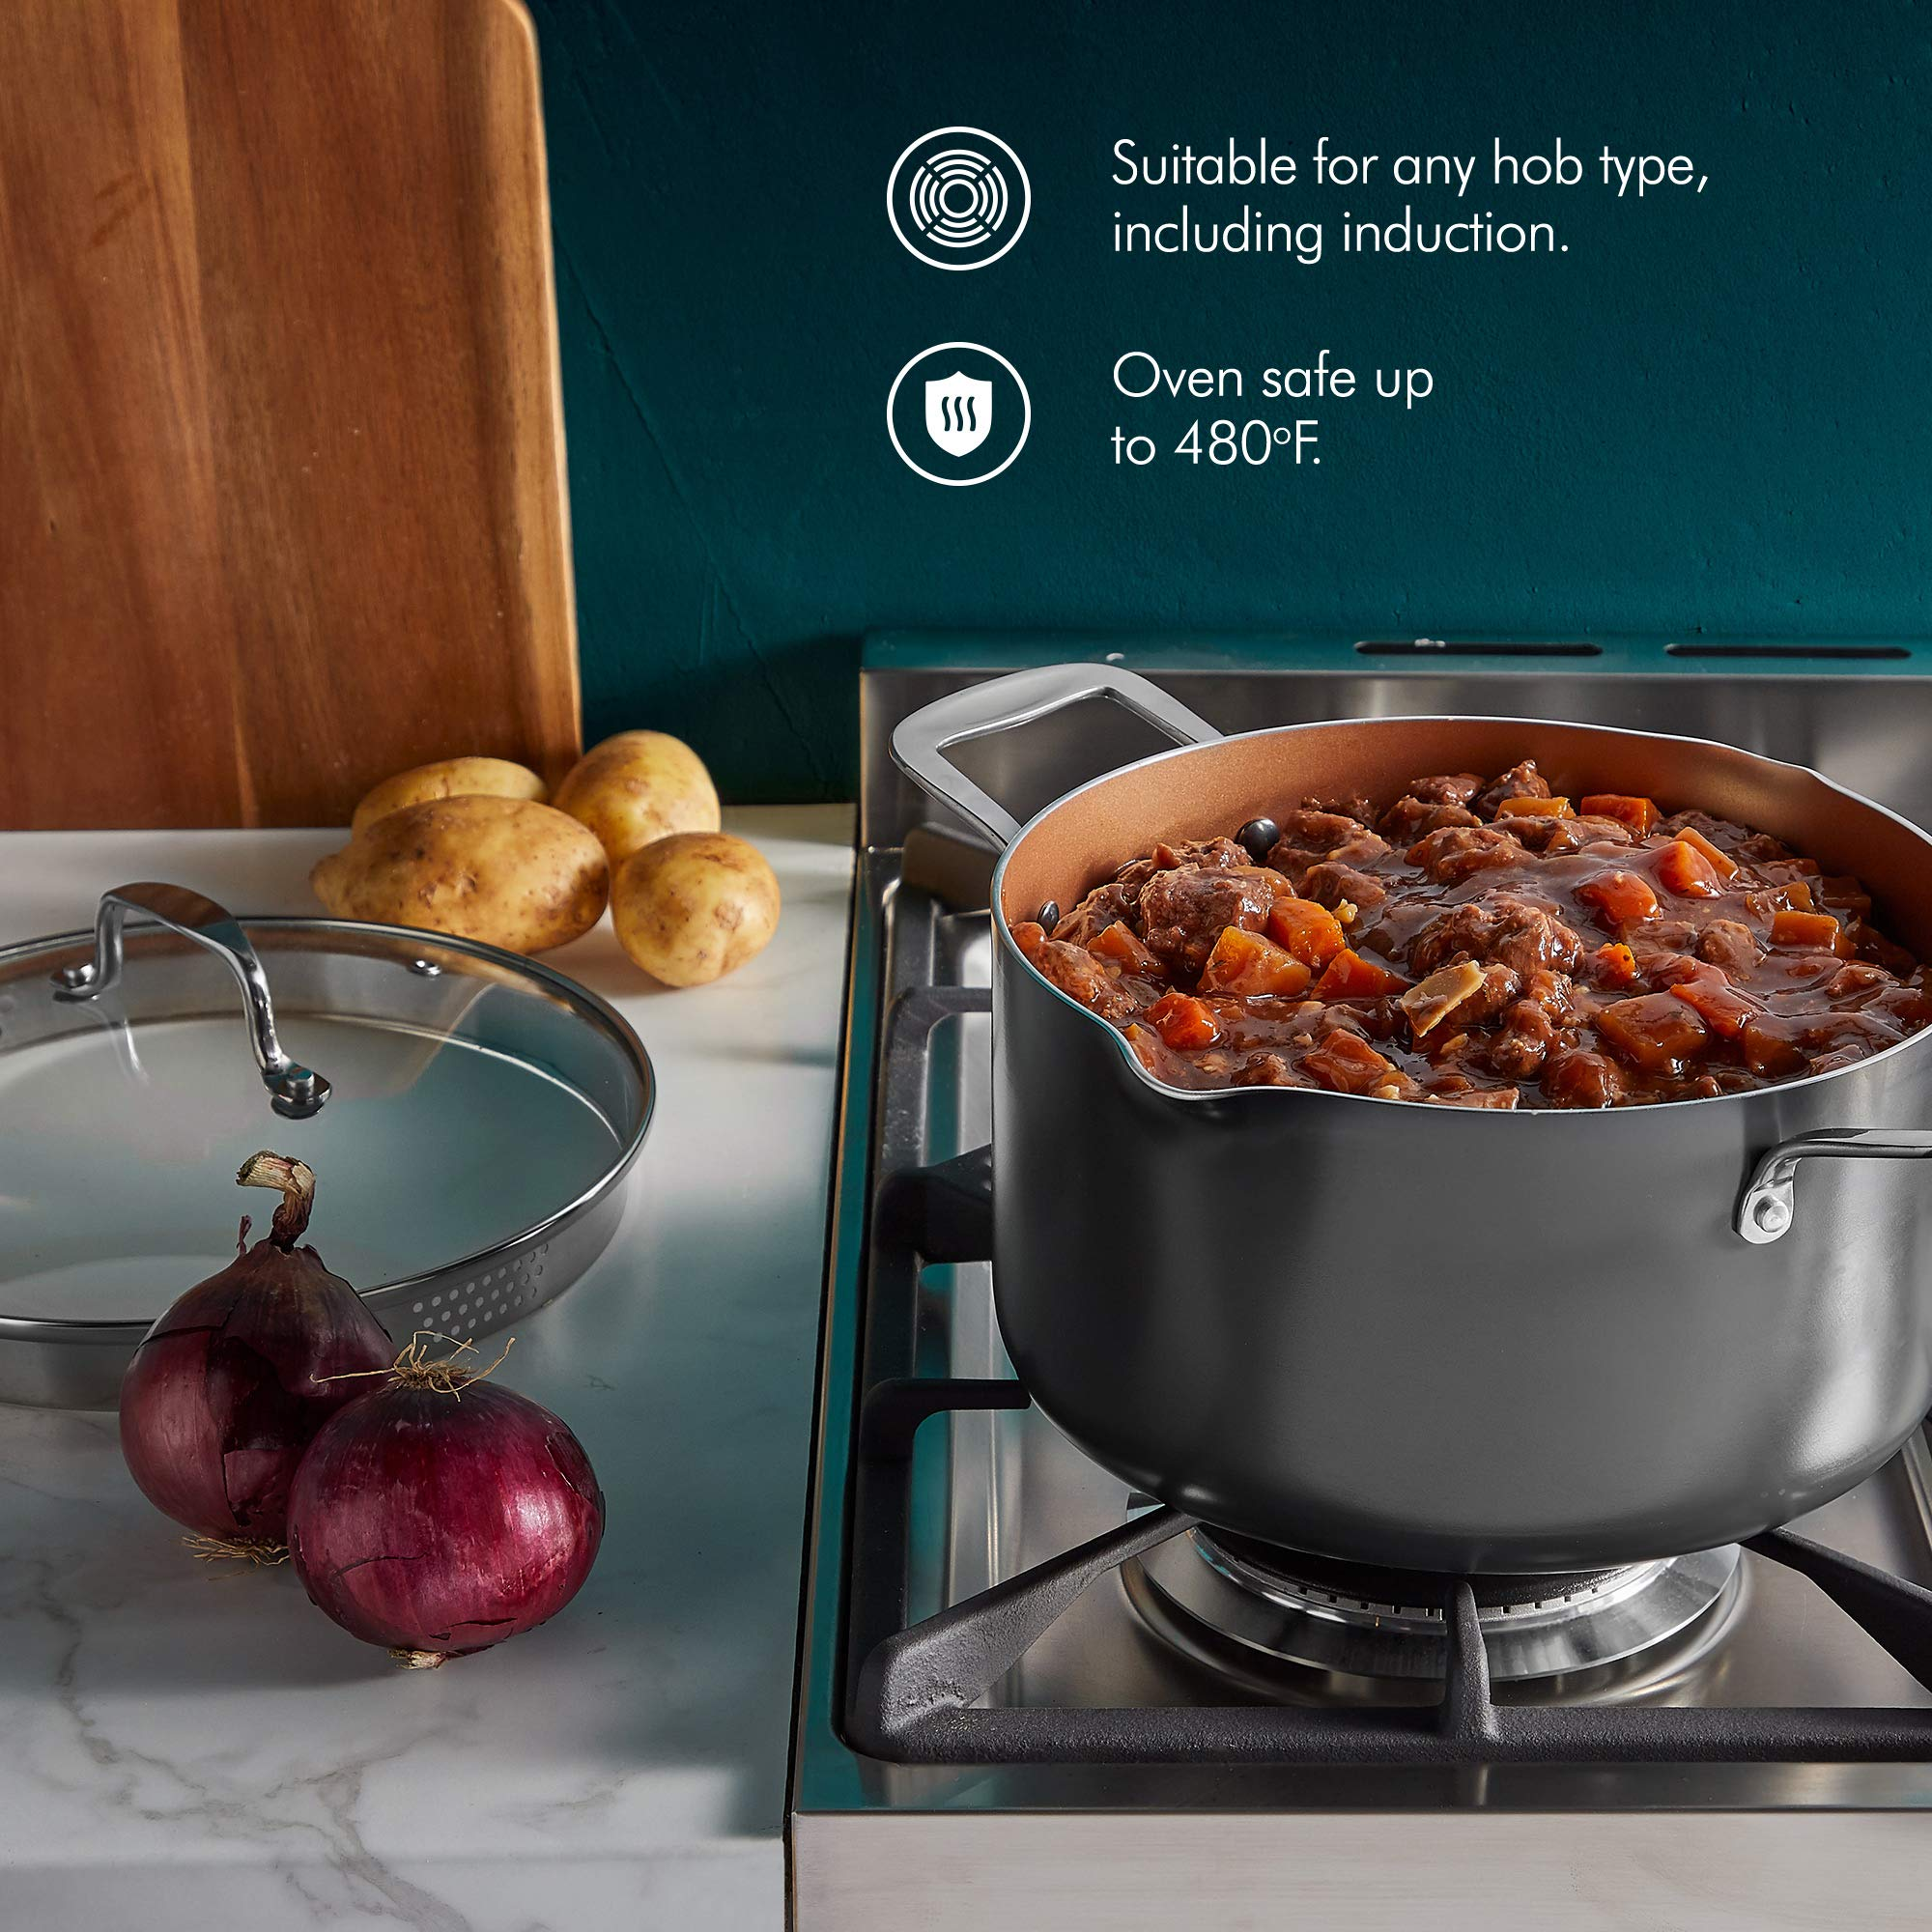 VonShef Casserole and Pasta Multi Pot with Strainer Lid, Easy Clean, Non-Stick Copper-Colored Interior, Stainless Steel Handles and Tempered Glass Lid, Induction Hob Ready, Copper, 5 Quart Capacity by VonShef (Image #4)